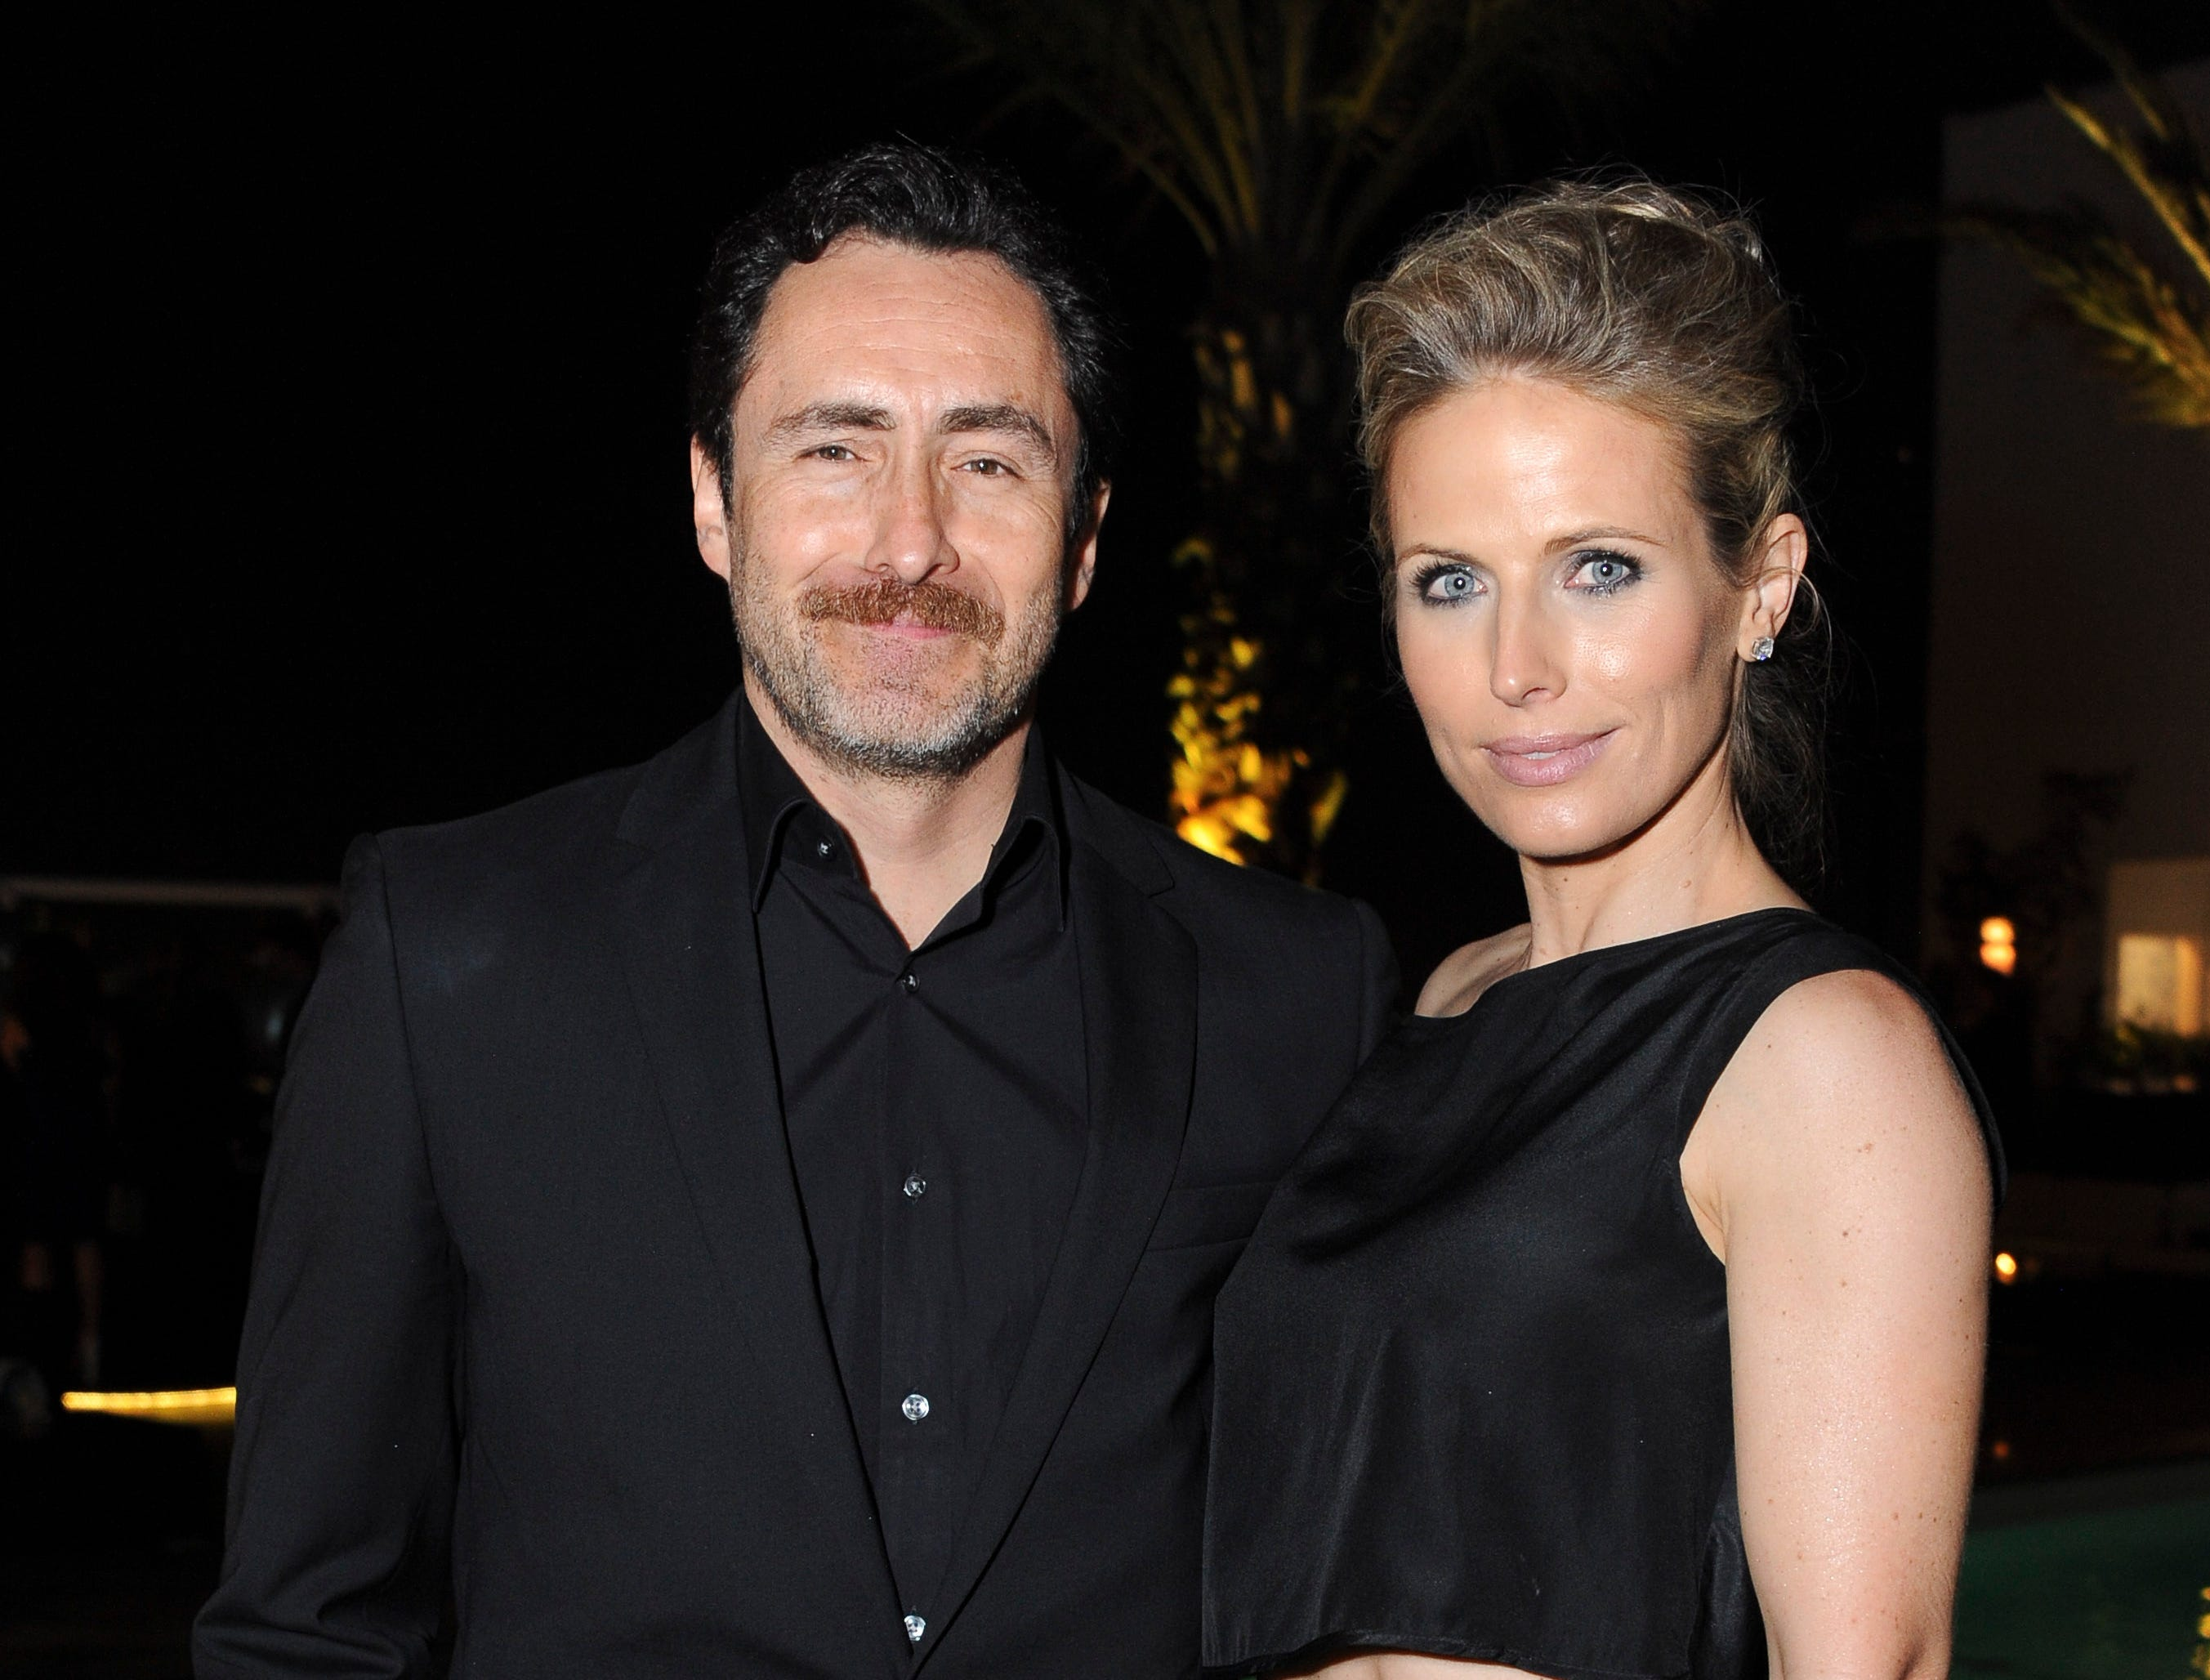 Demian Bichir and Stefanie Sherk attend TheWrap's First Annual Emmy Party on June 5, 2014, in West Hollywood, California.